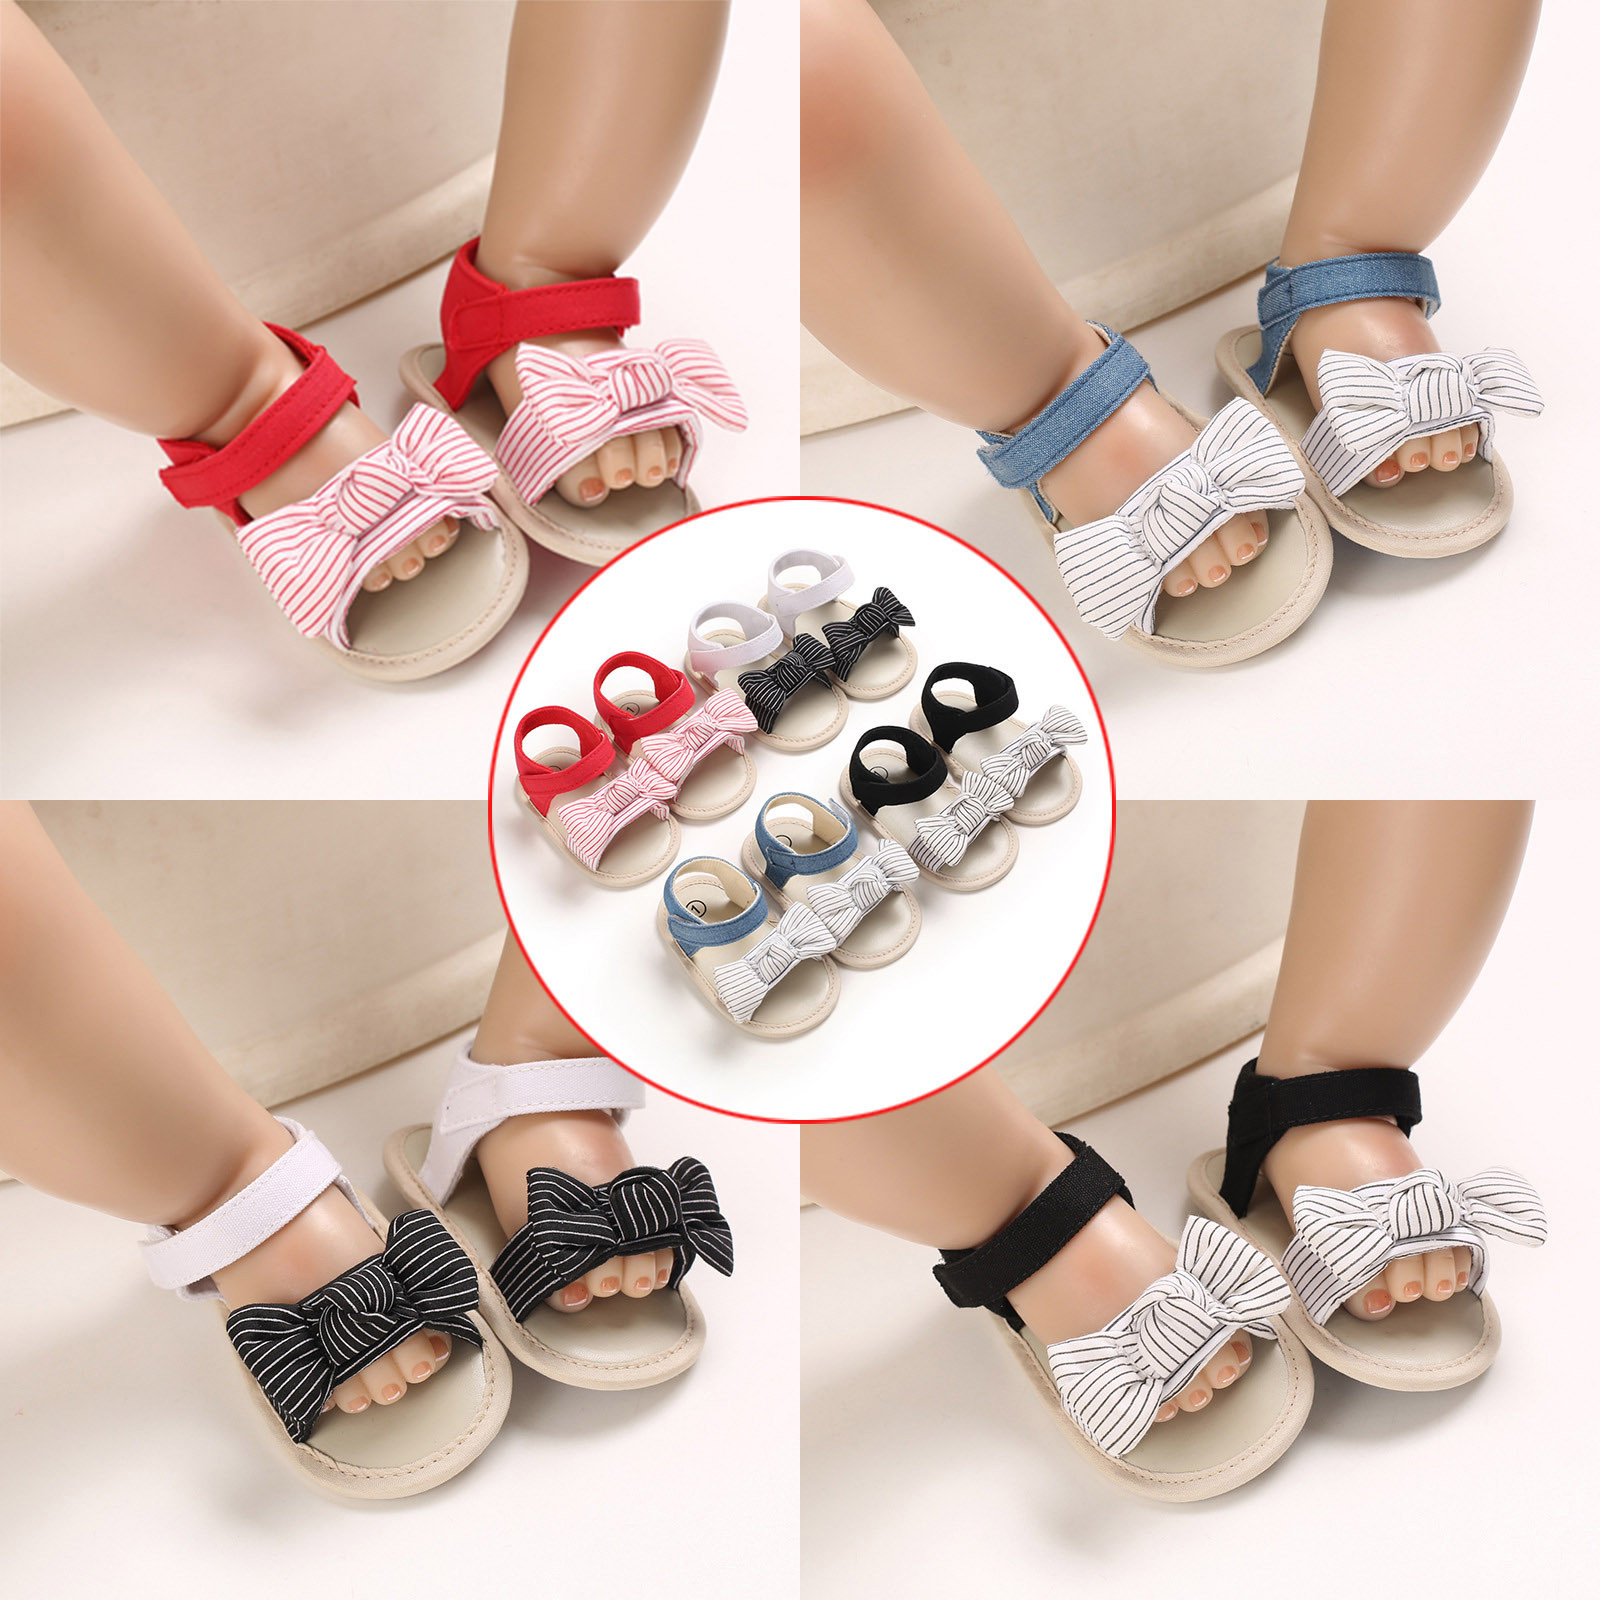 2021 New Baby Sandals Shoes Toddler Infants Girls Striped Bow Soft Non-Slip Rubber Sole Flat Walking Shoes Newborn Girl Sandals